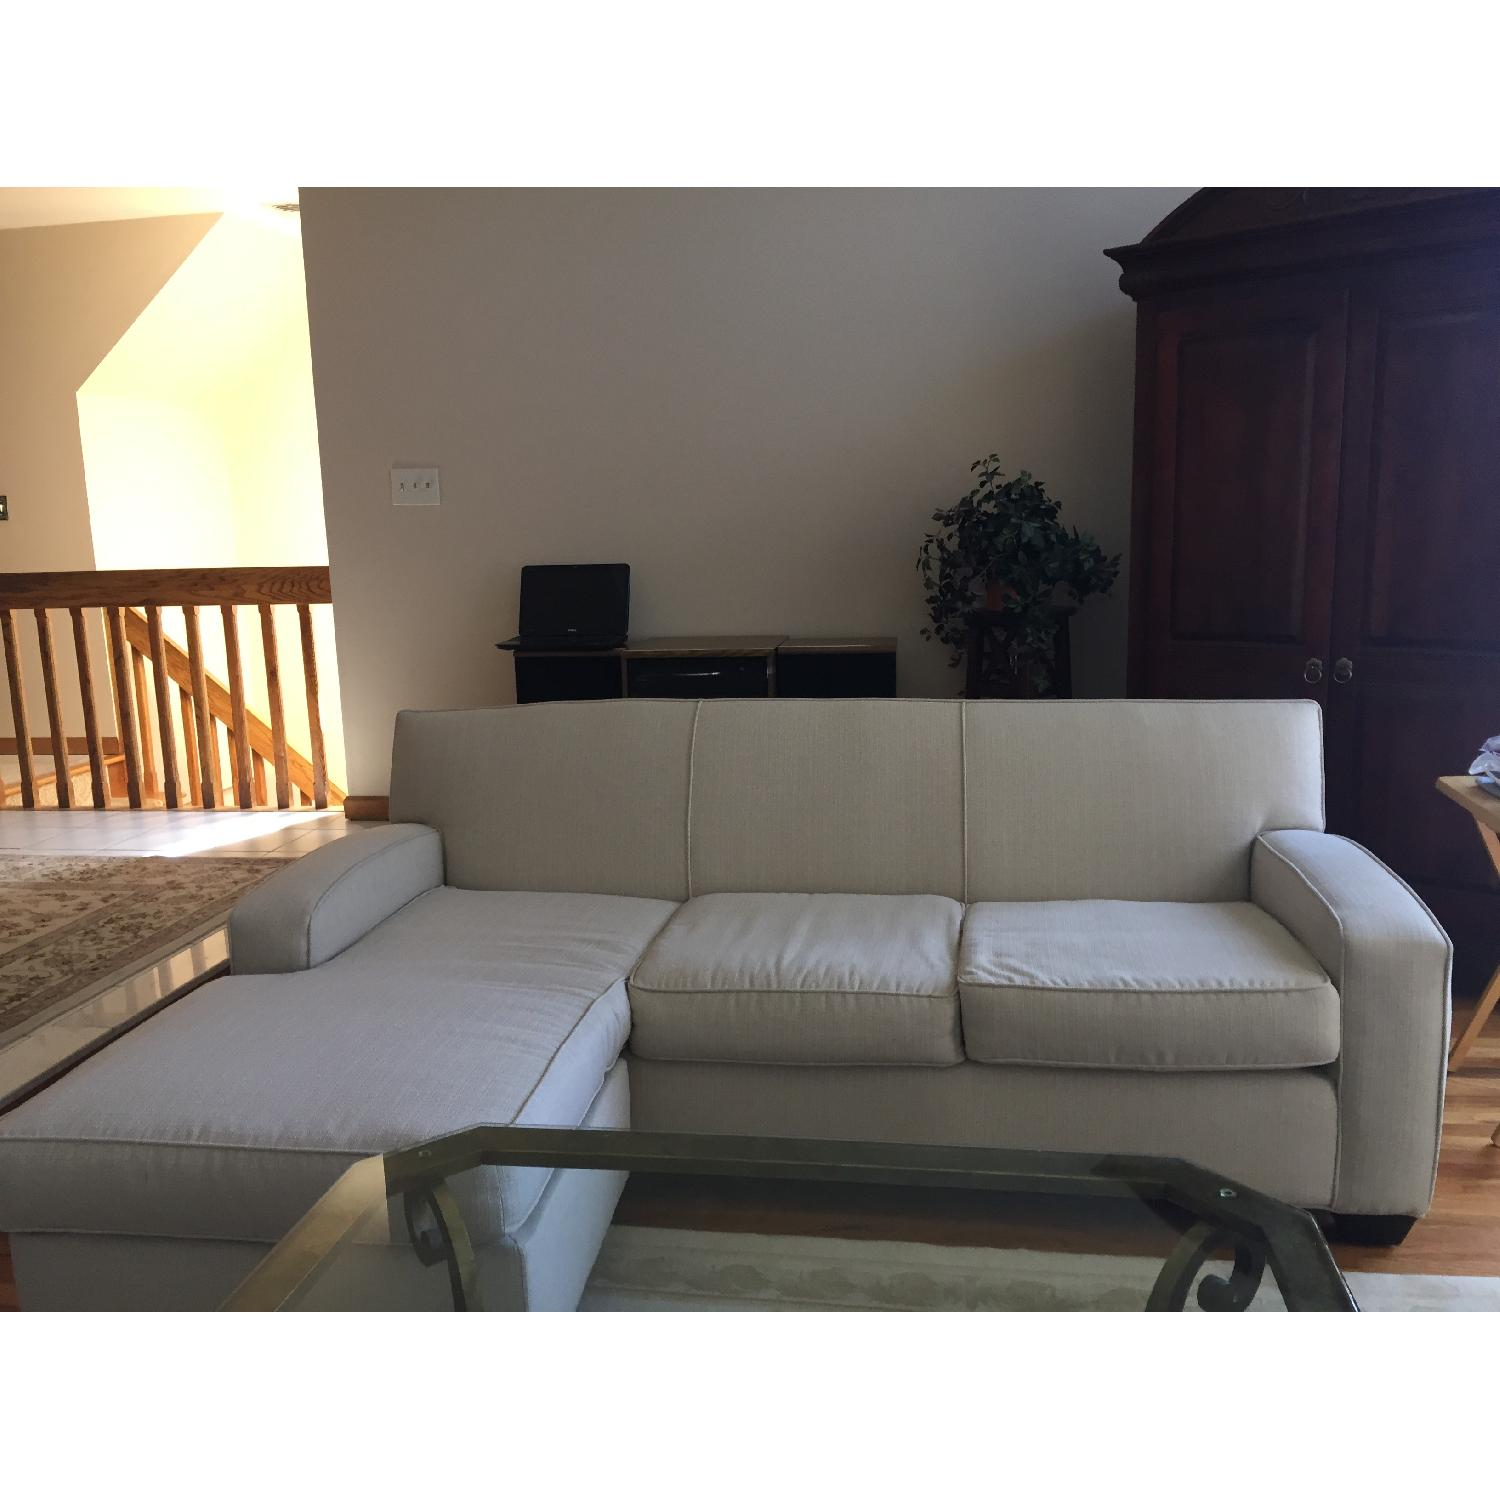 2 Piece Sectional Sofa W/ Floating Chaise ...